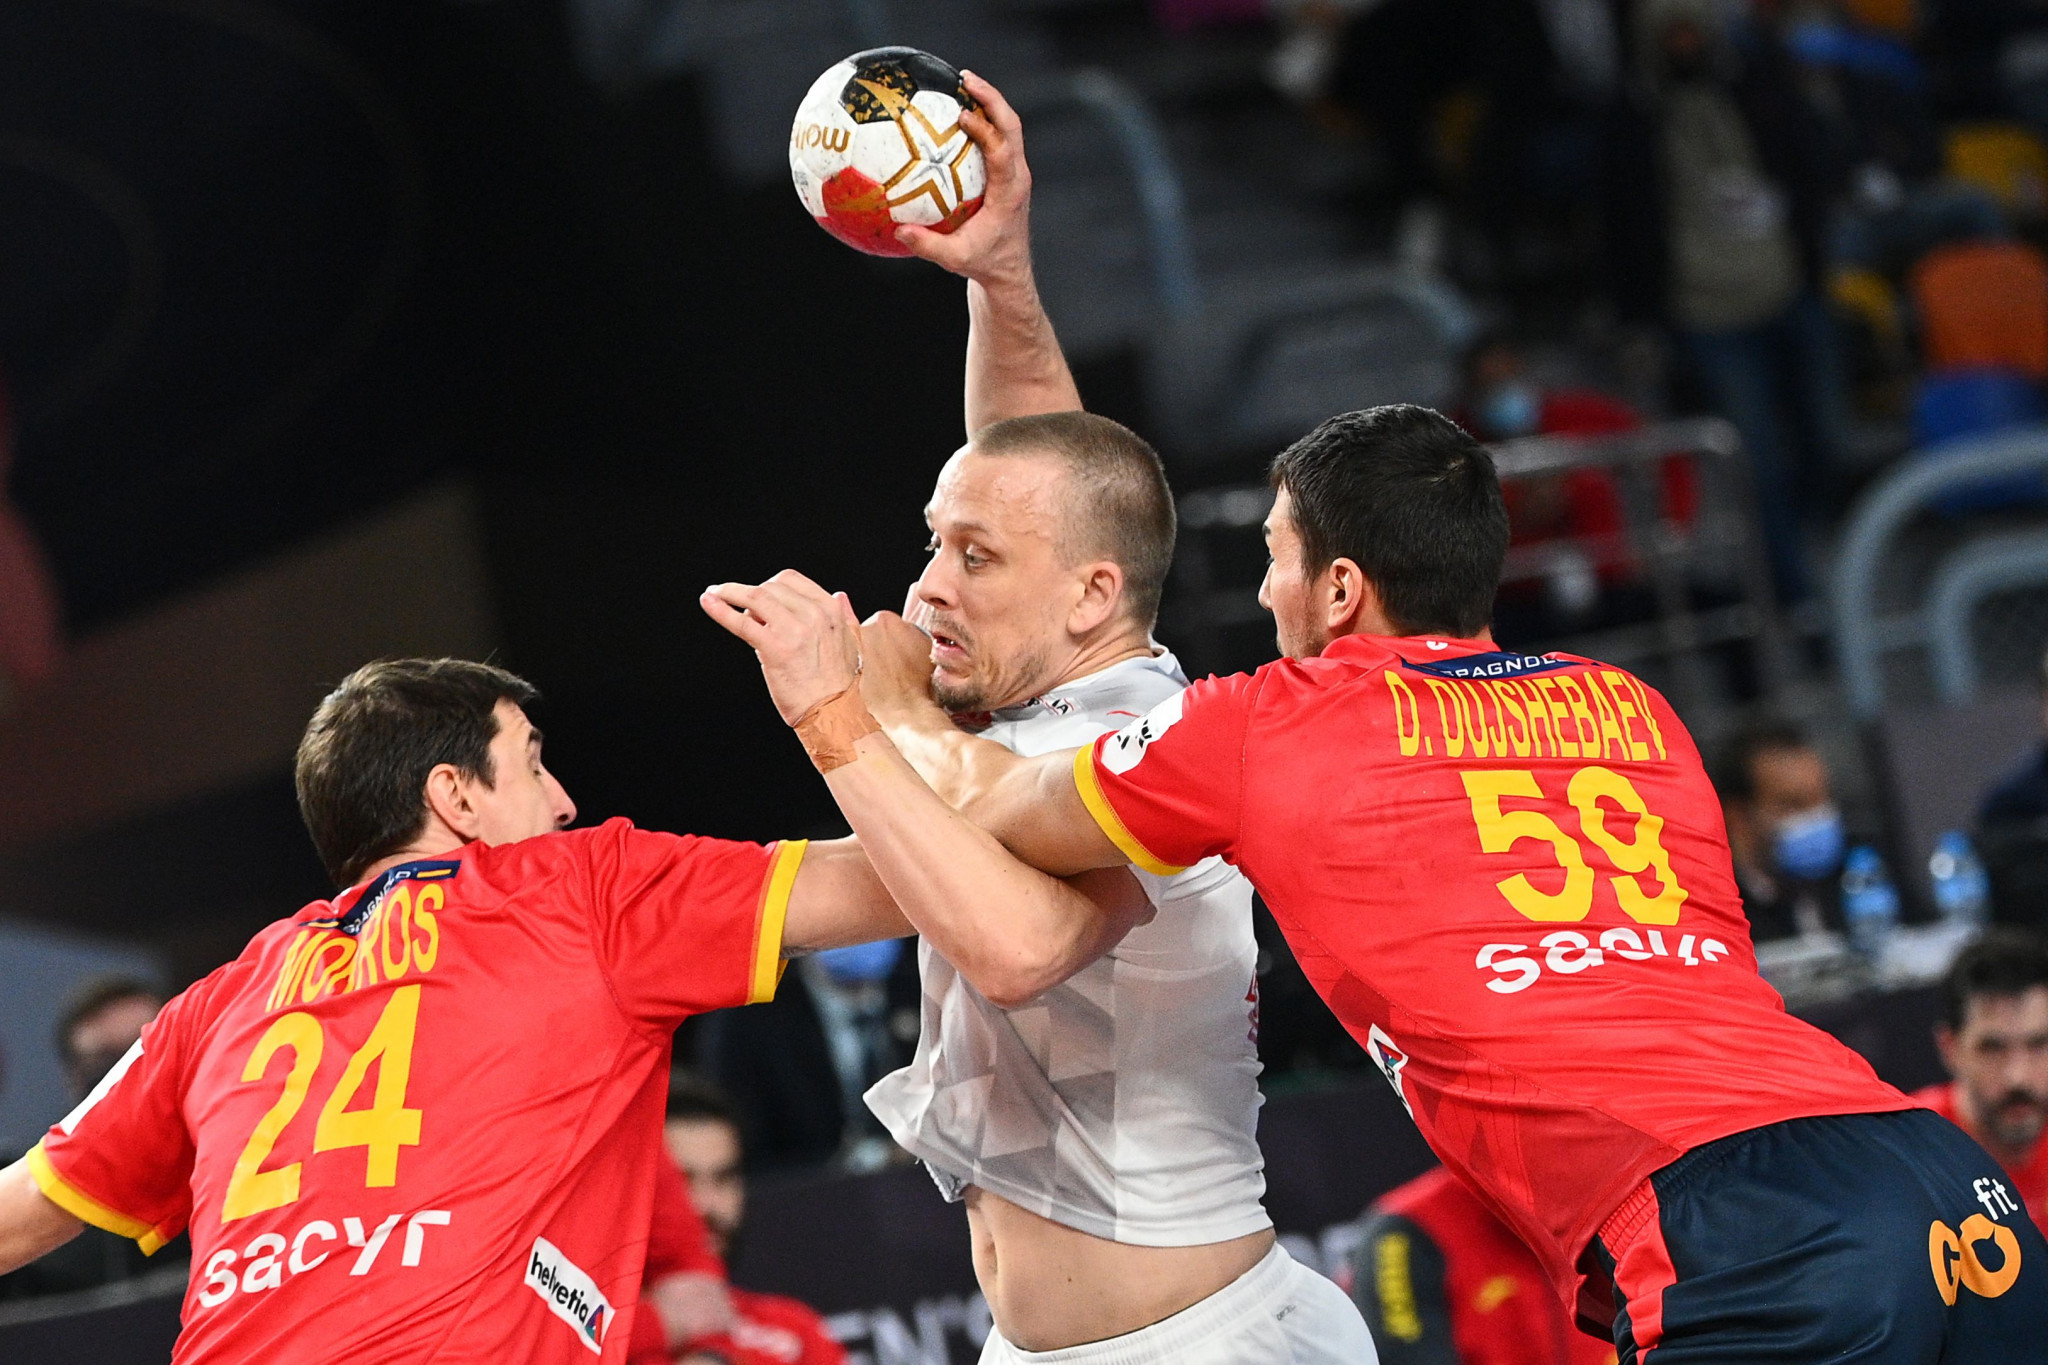 Defending champions Denmark (in white) will have the chance to retain their IHF World Men's Handball Championship title after edging out Spain in today's semi-final ©Getty Images